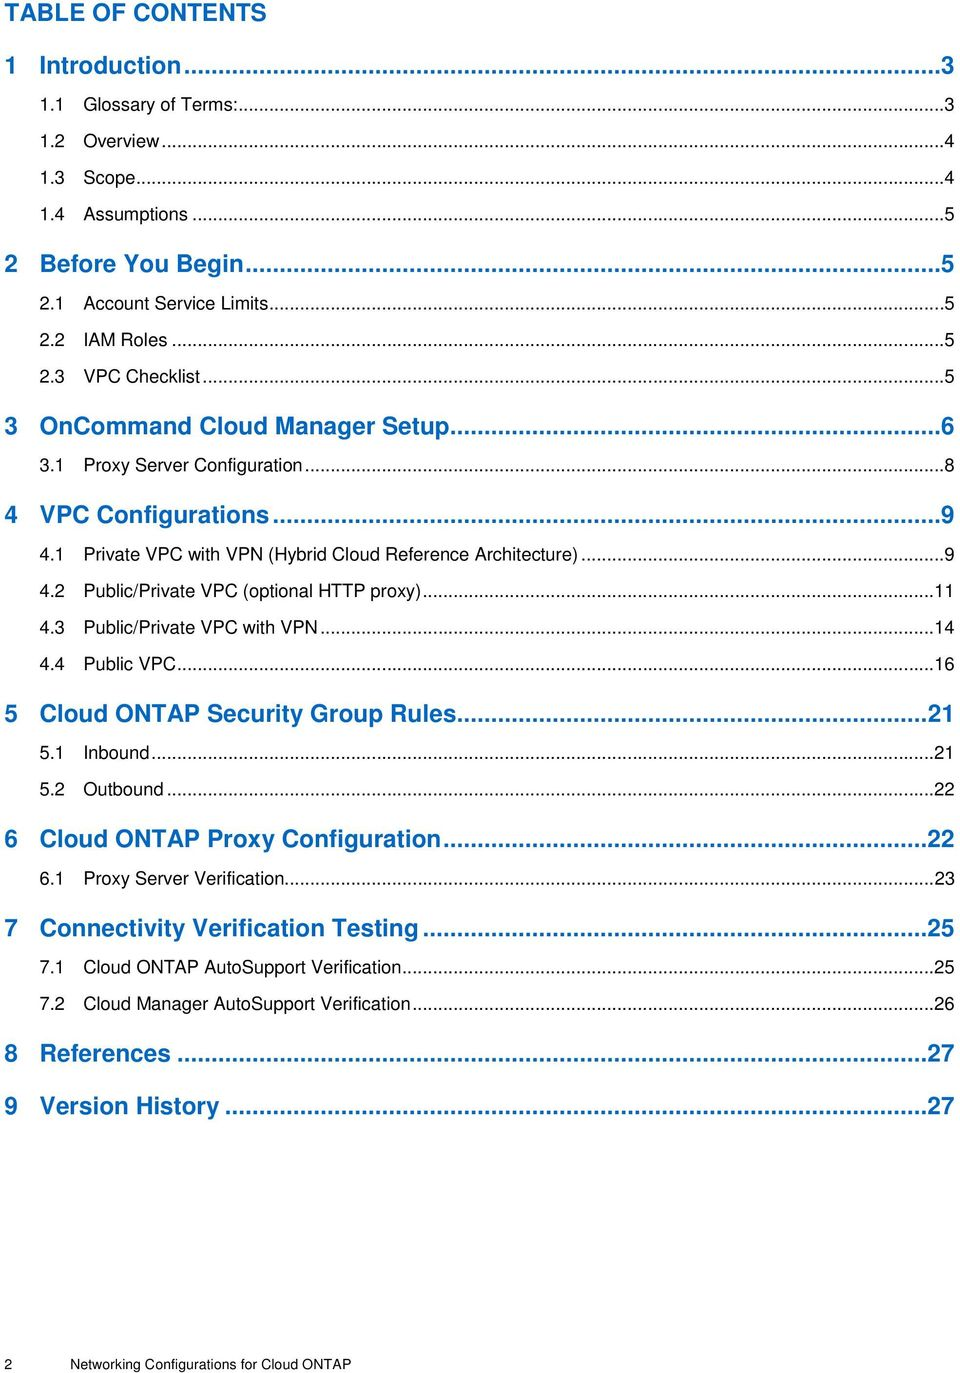 .. 11 4.3 Public/Private VPC with VPN... 14 4.4 Public VPC... 16 5 Cloud ONTAP Security Group Rules... 21 5.1 Inbound... 21 5.2 Outbound... 22 6 Cloud ONTAP Proxy Configuration... 22 6.1 Proxy Server Verification.